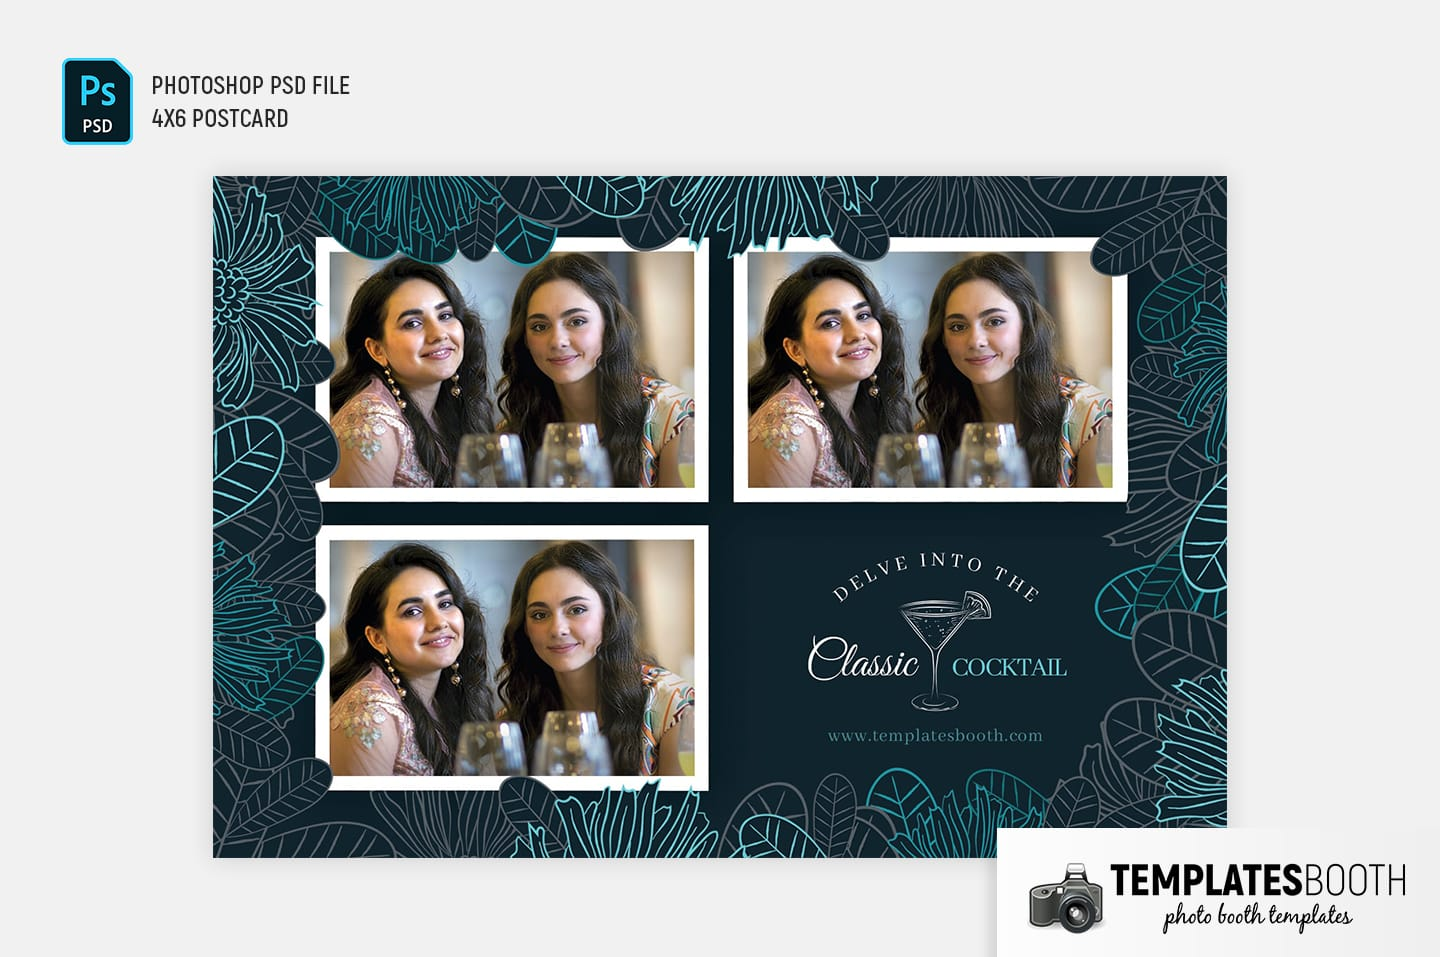 Cocktail Bar Photo Booth Template (4x6 postcard landscape)